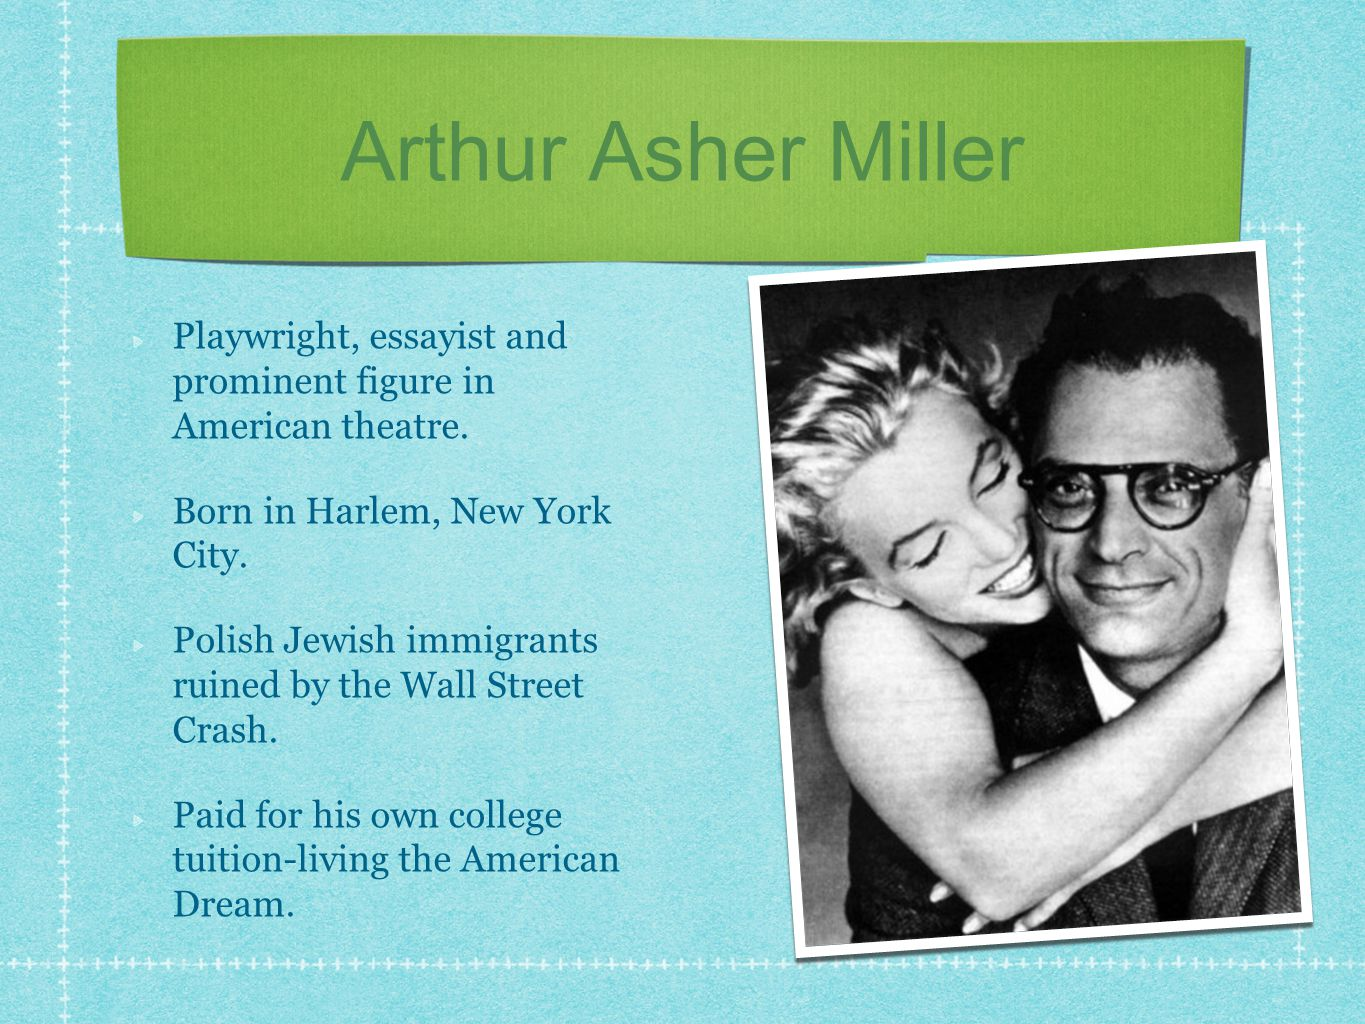 Arthur Asher Miller Playwright, essayist and prominent figure in American theatre.